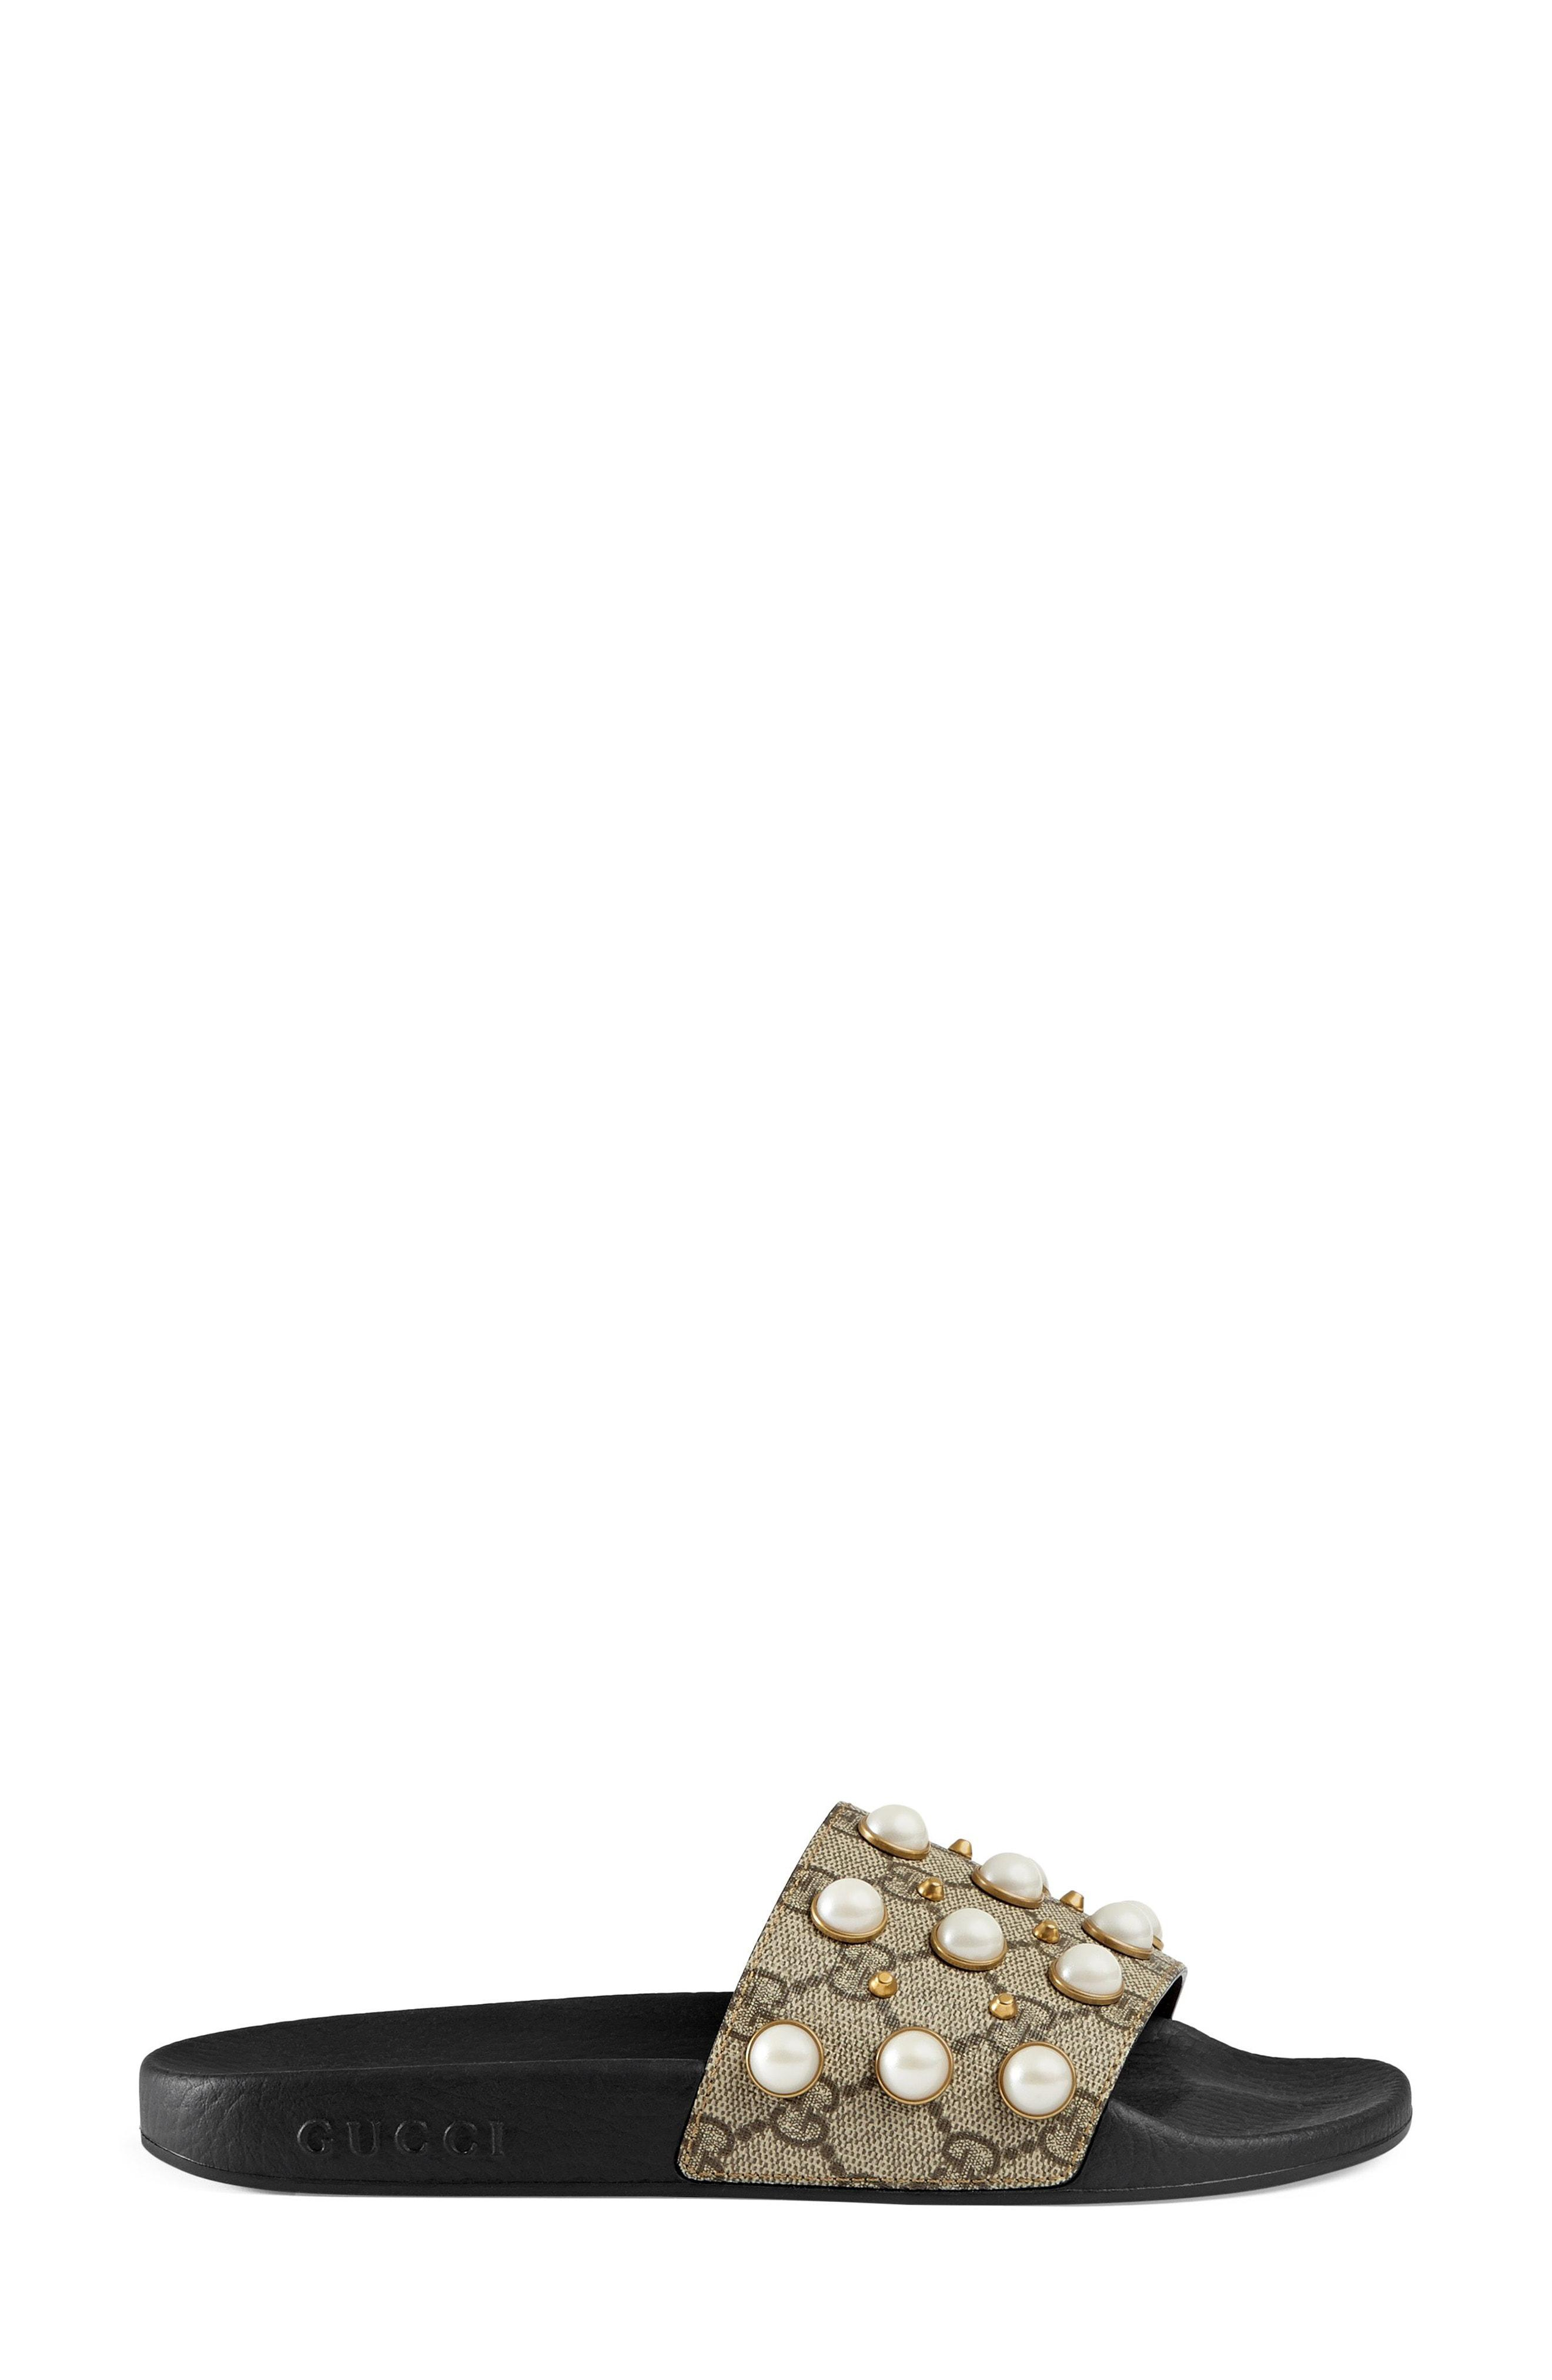 6228e3495fb Gucci - Natural Pursuit Imitation Pearl Embellished Slide Sandal - Lyst.  View fullscreen